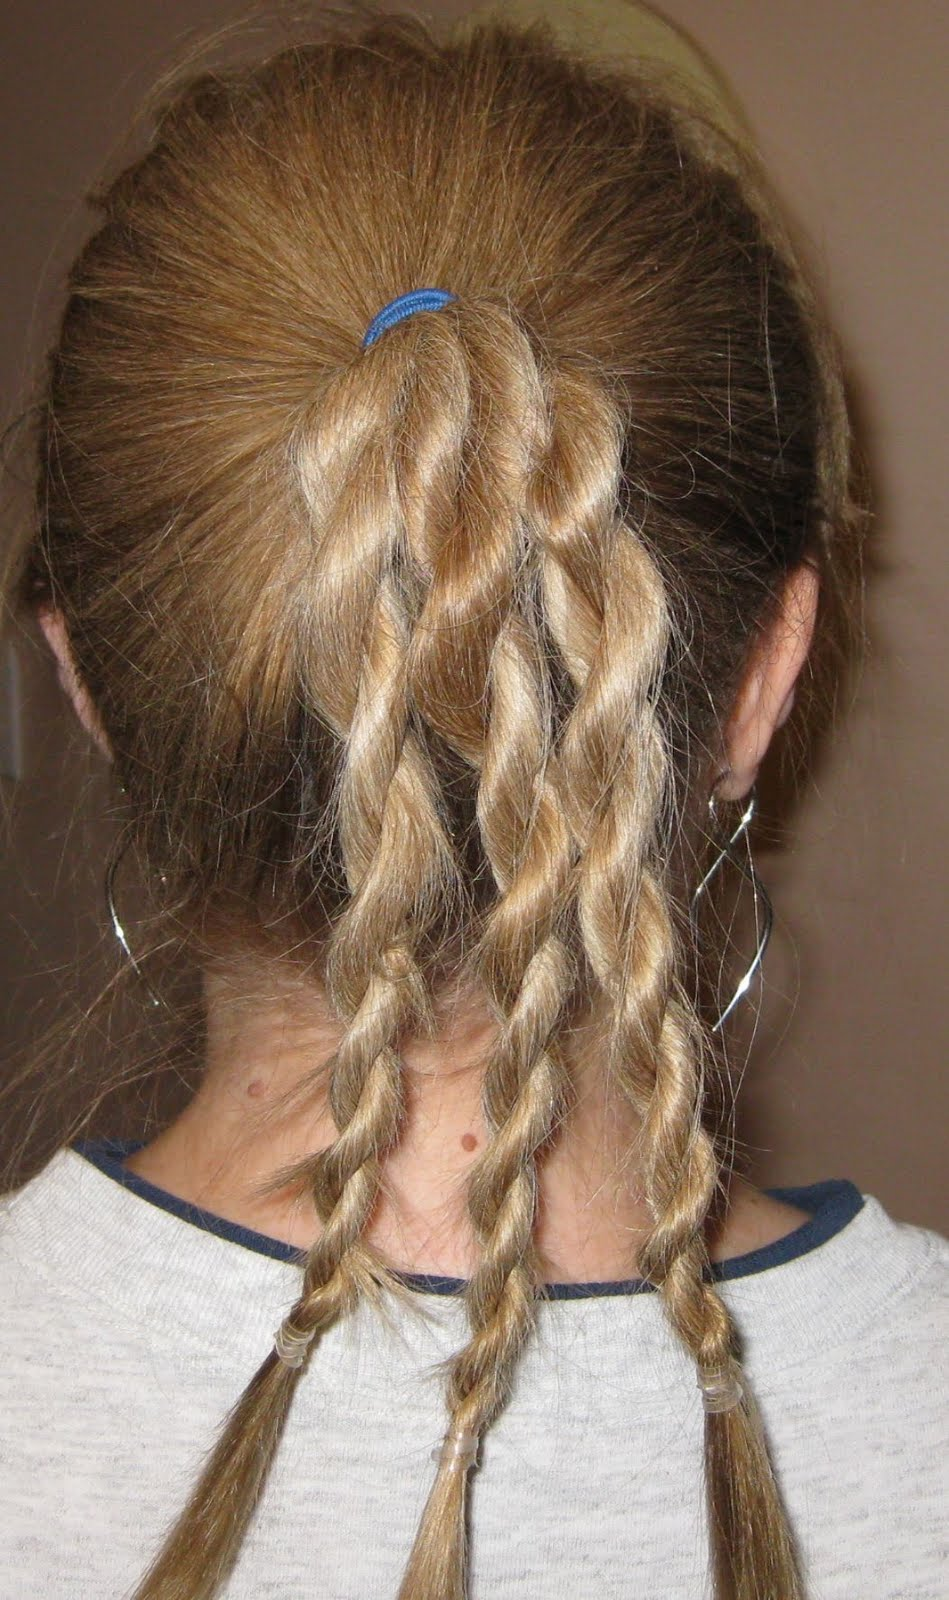 Rope Braid Hair Instructions